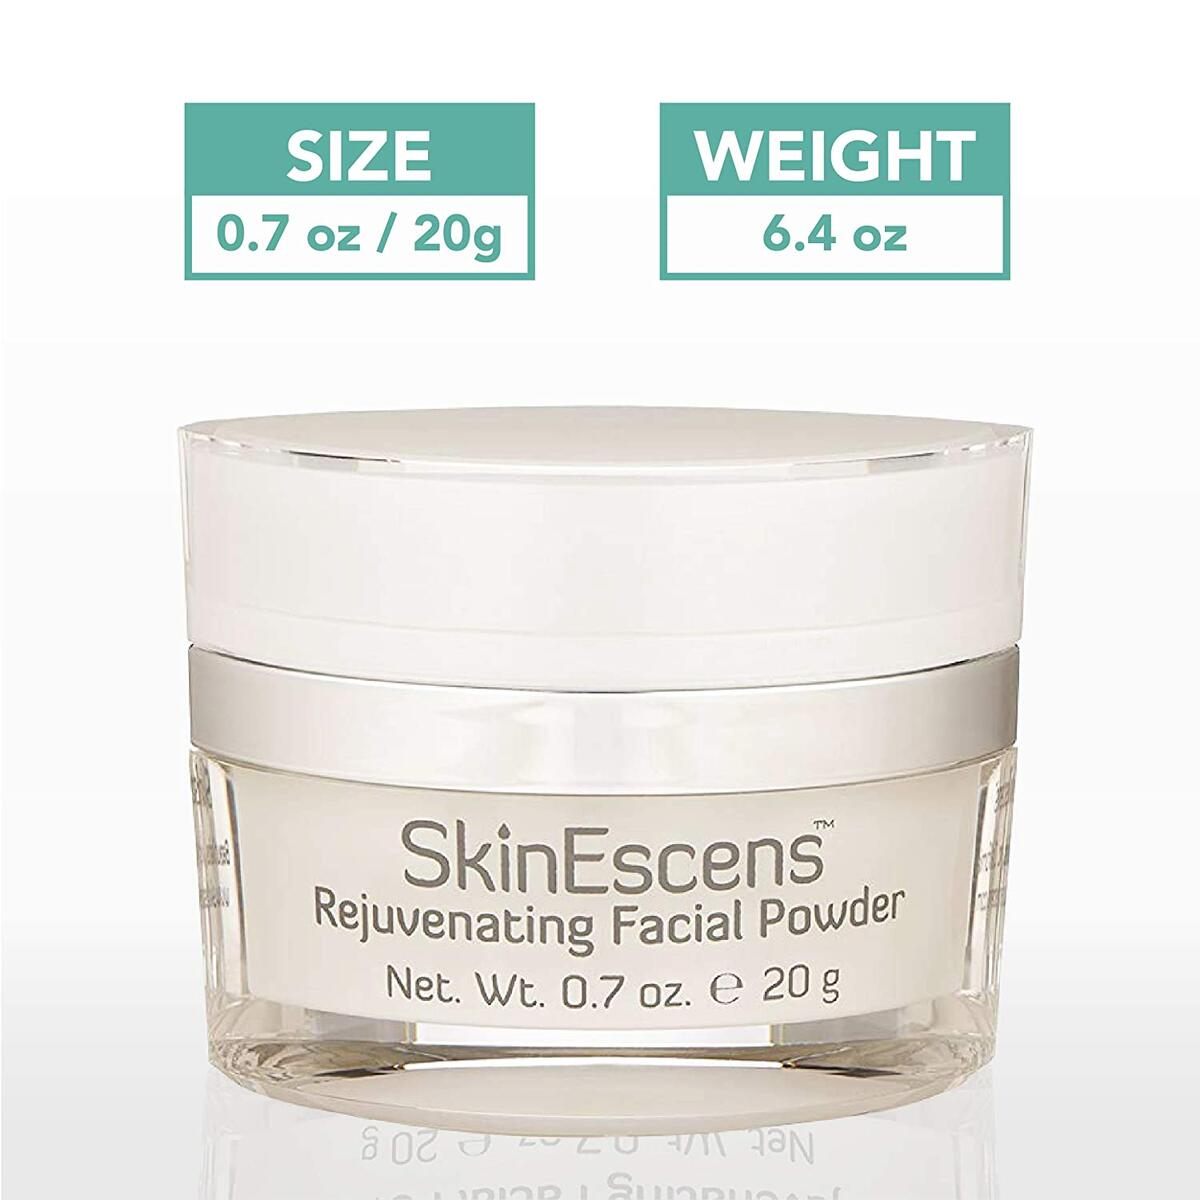 SkinEscens Exfoliating Rejuvenating Facial Powder - Face Exfoliator, Cleanser and Mask - Microdermabrasion Scrub - Anti-Aging - Smooths and Polishes Skin - Evens Skin Tone